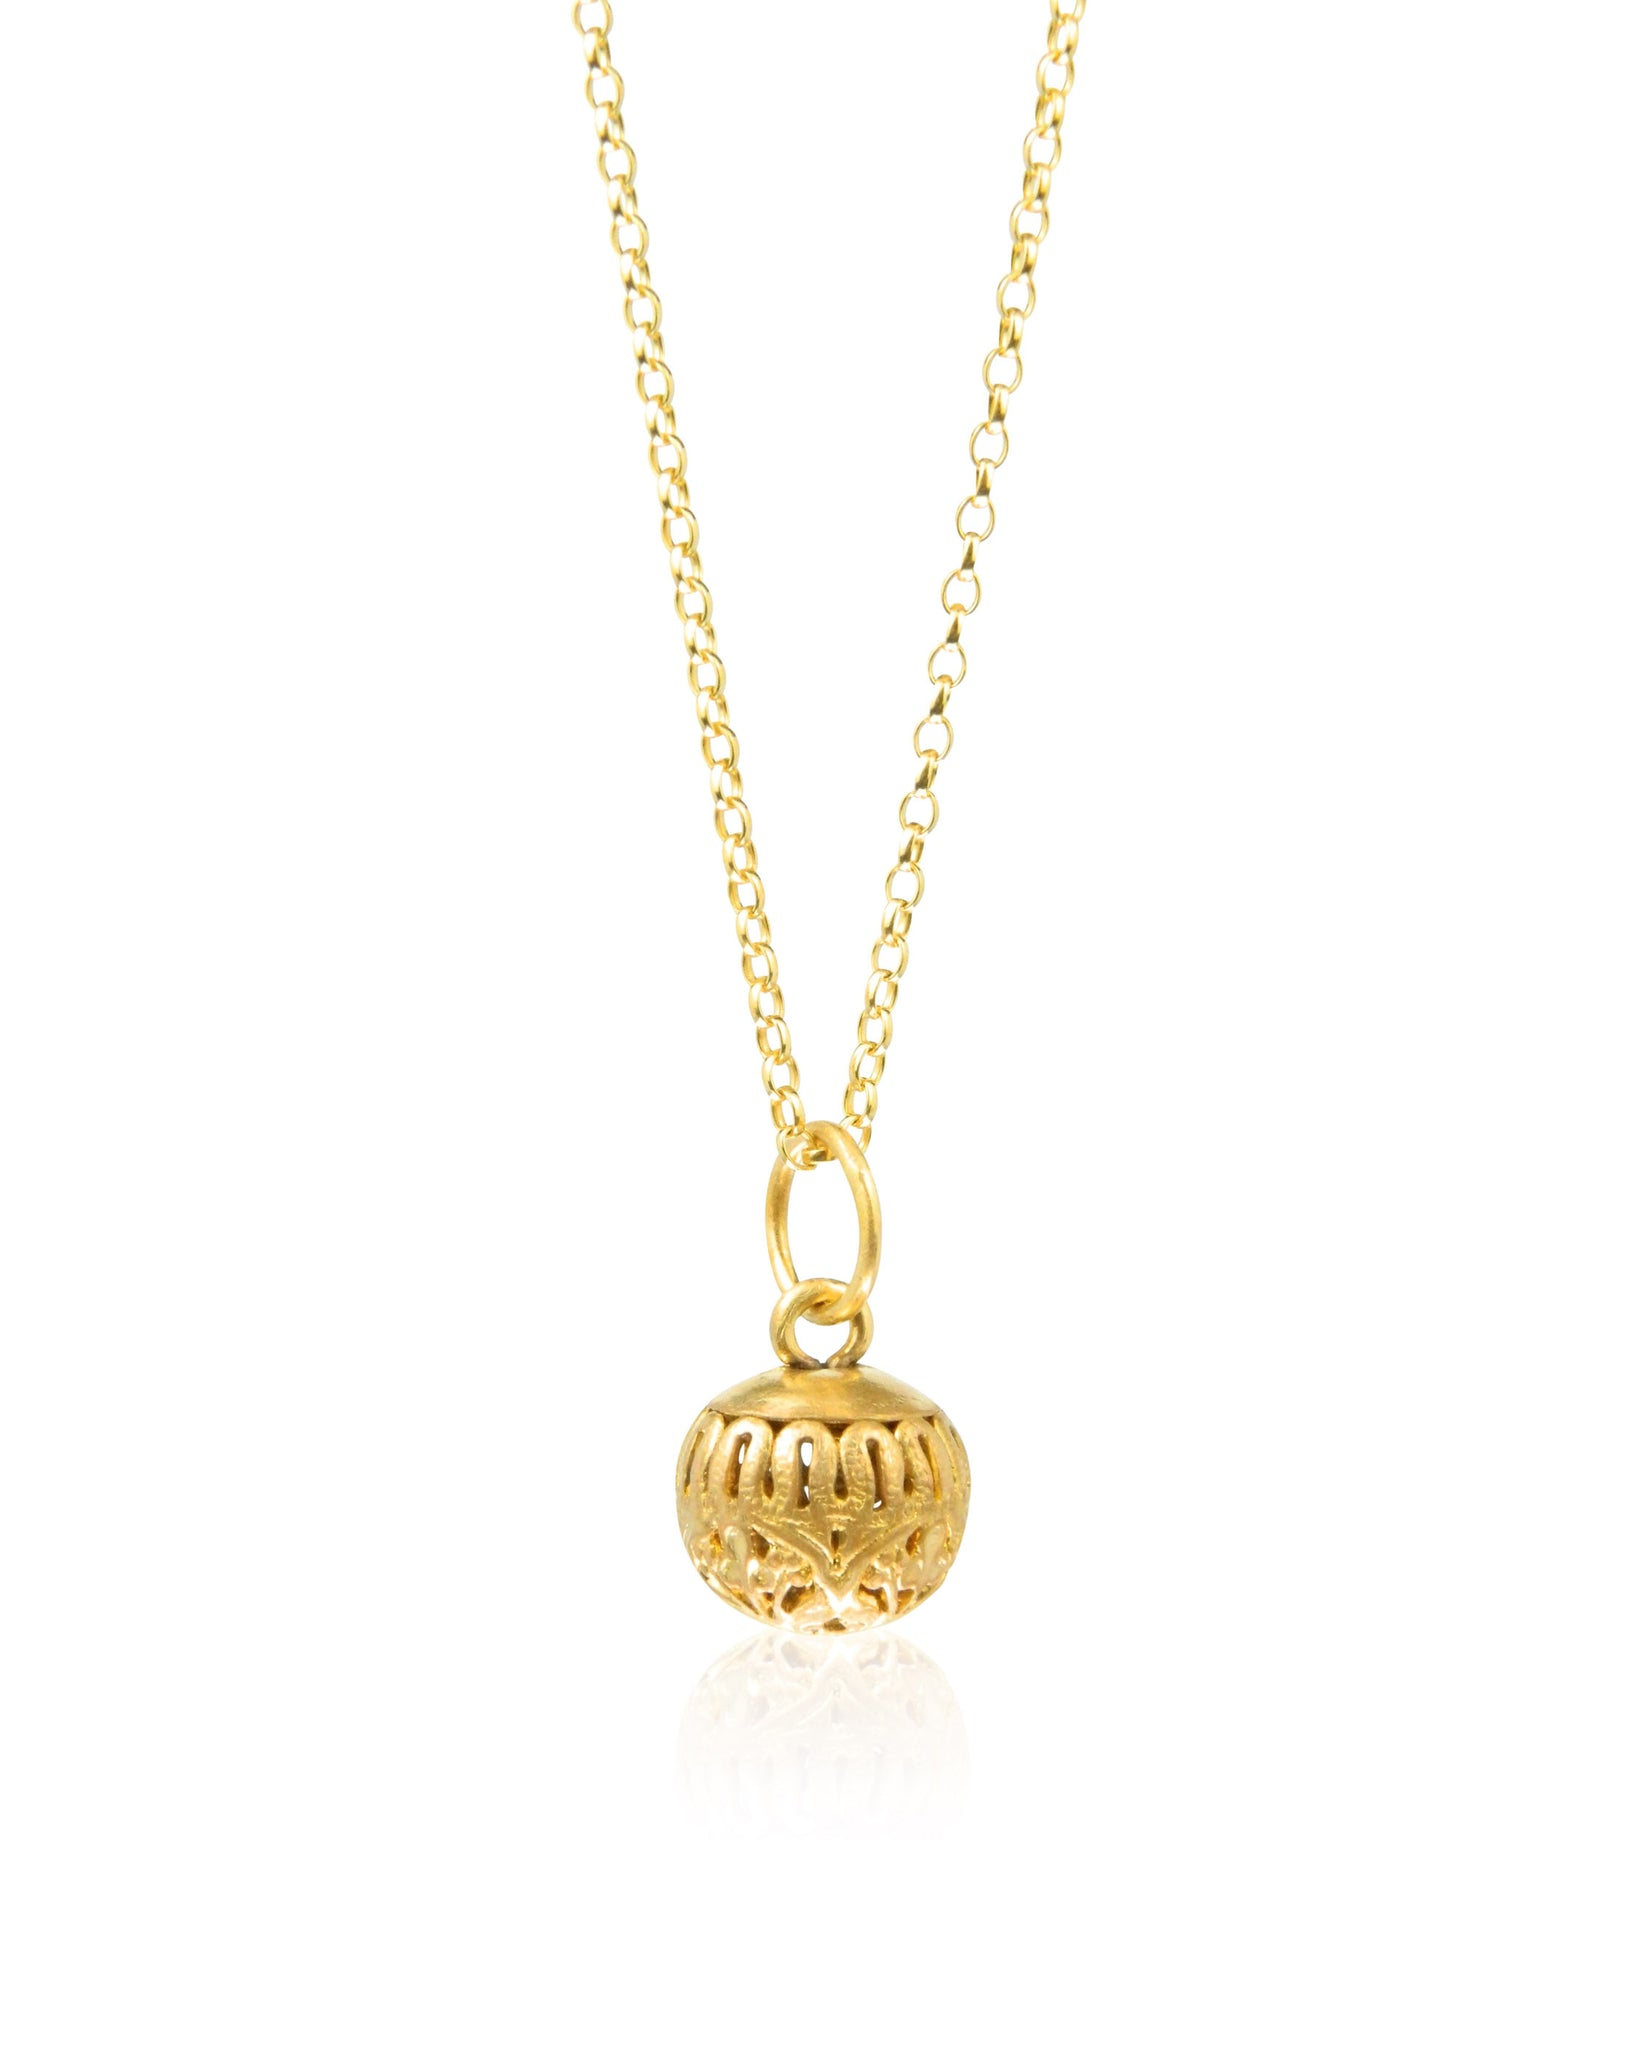 Ball filigree pendant and chain